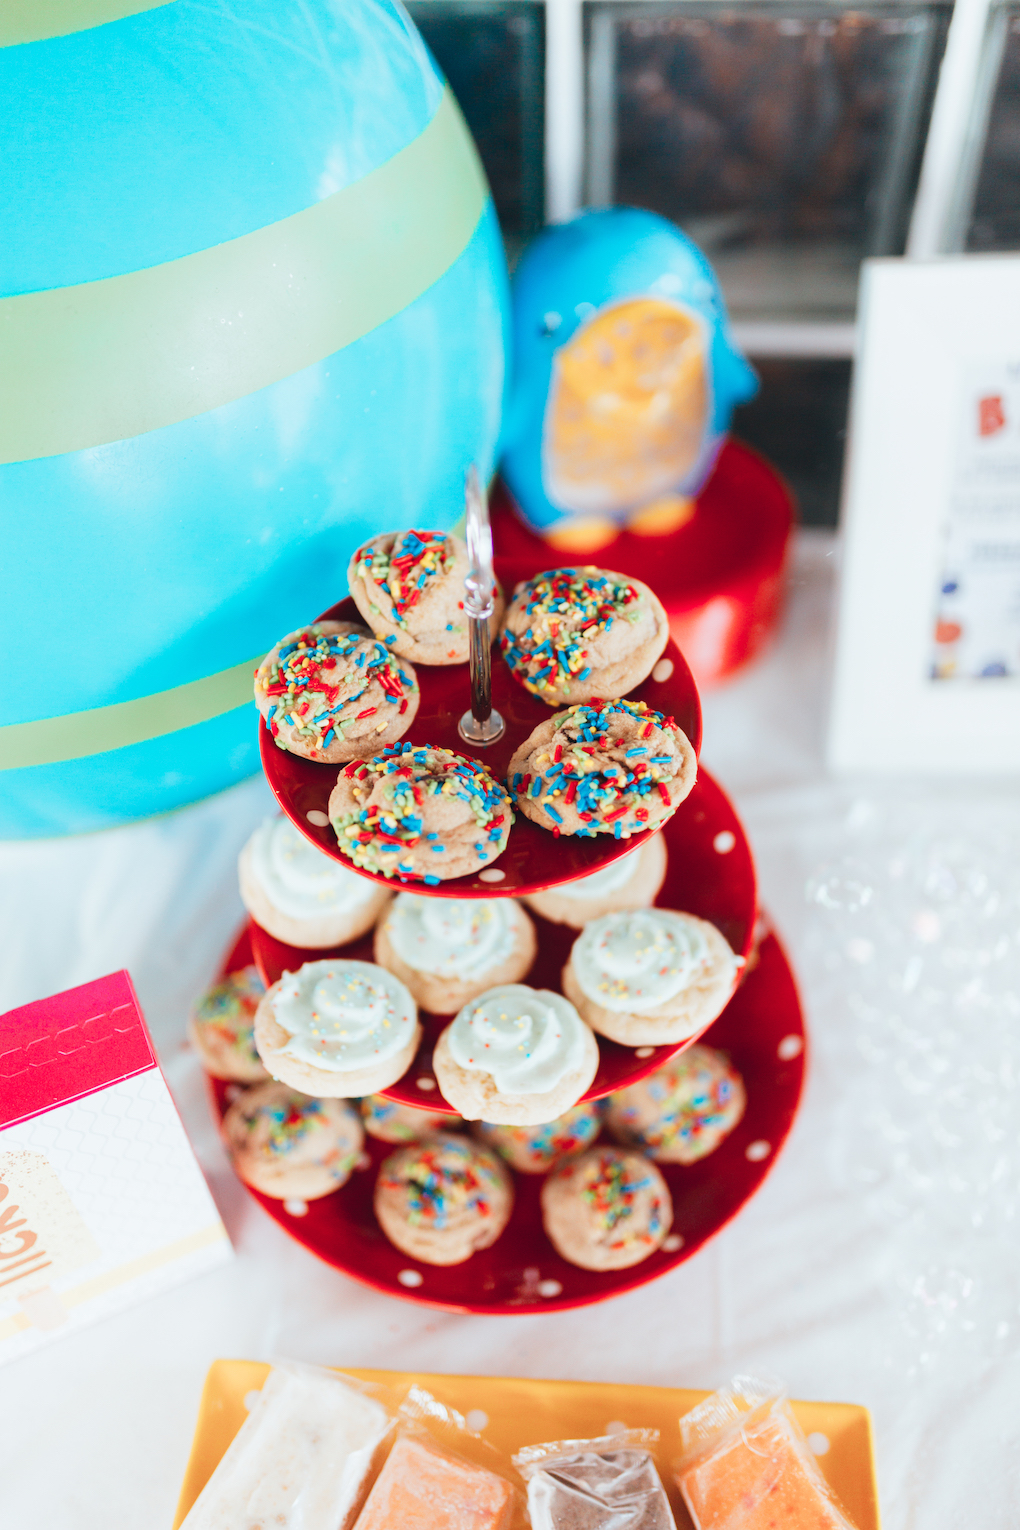 KINGS HAPPY UN-BIRTHDAY - KIDS BALL PARTY by Utah blogger Dani Marie - Red Yellow Green Blue Chocolate Chip Cookies and Sugar Cookies